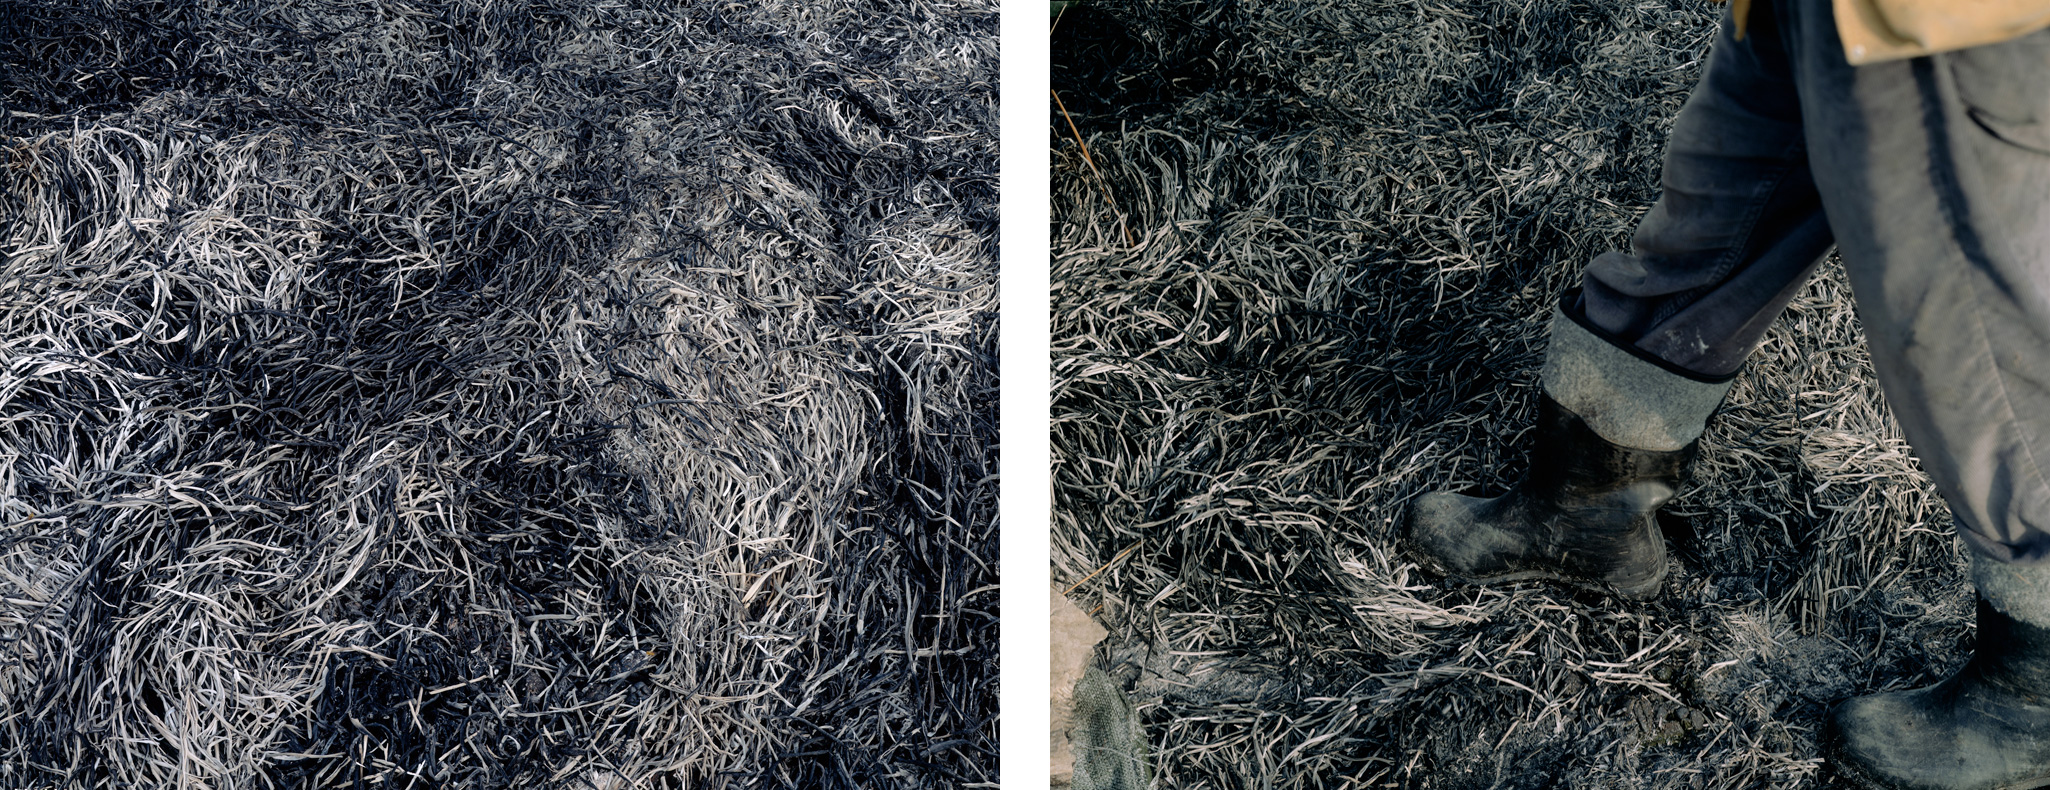 Ashes_diptych.jpg